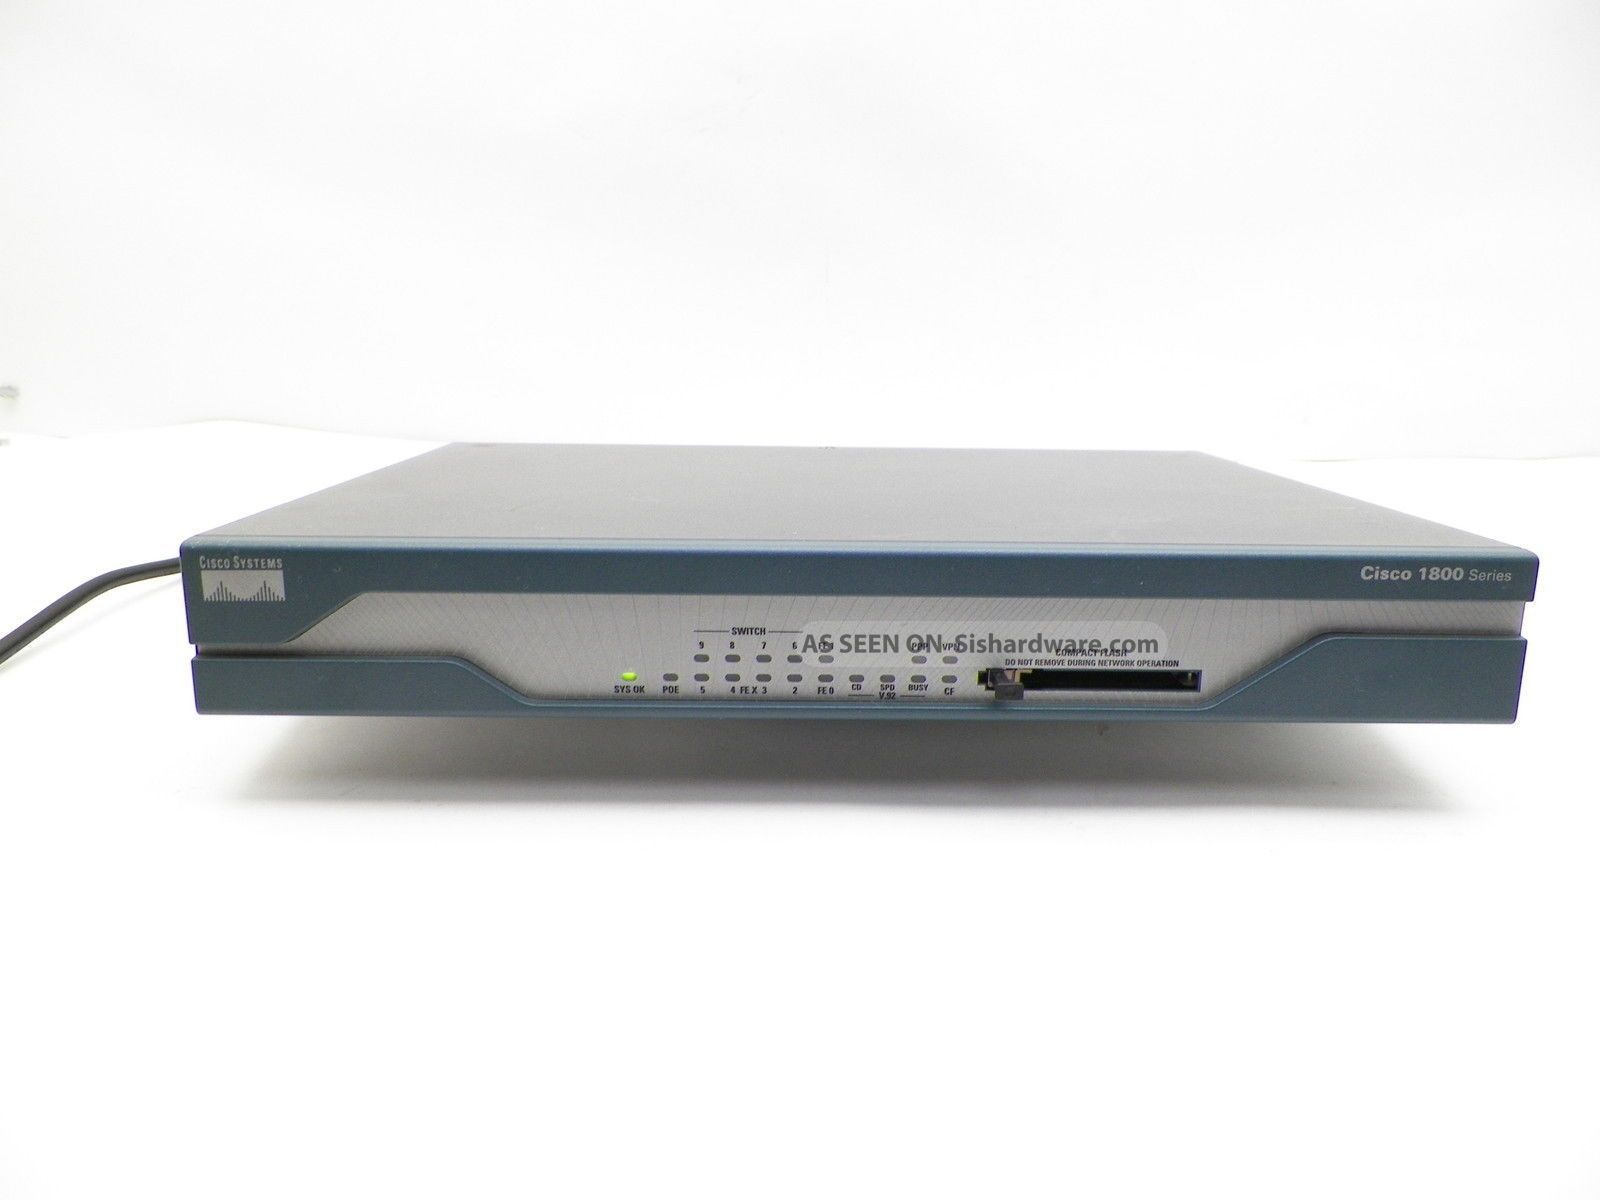 cisco router Buy refurbished cisco routers, switches & phones that help you build a quality technology infrastructure as a reseller, we have the best used & refurbished cisco gear for sale.